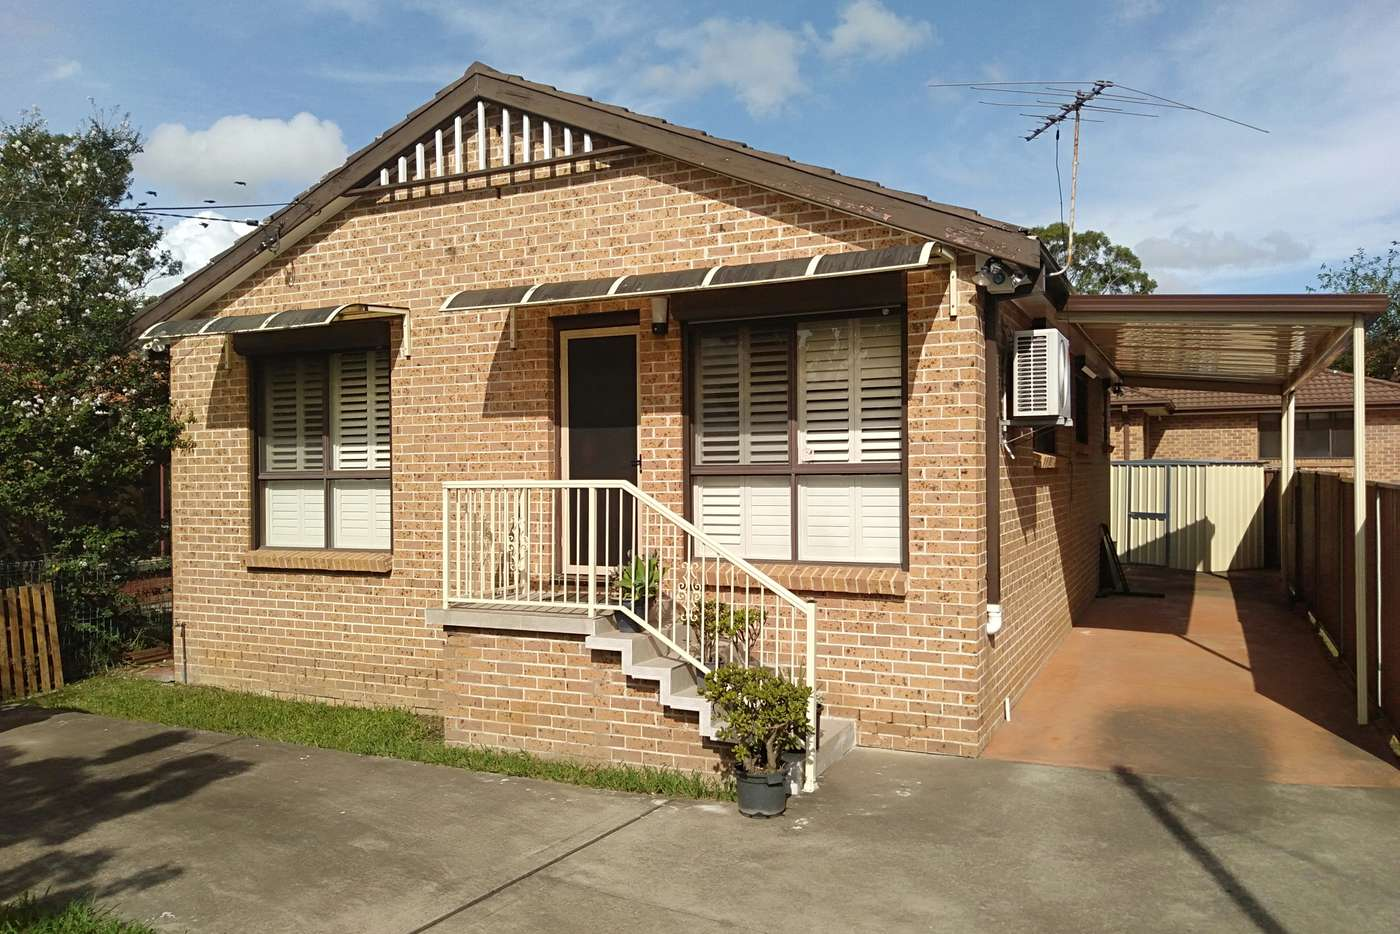 Main view of Homely house listing, 25 Breakfast Rd, Marayong NSW 2148